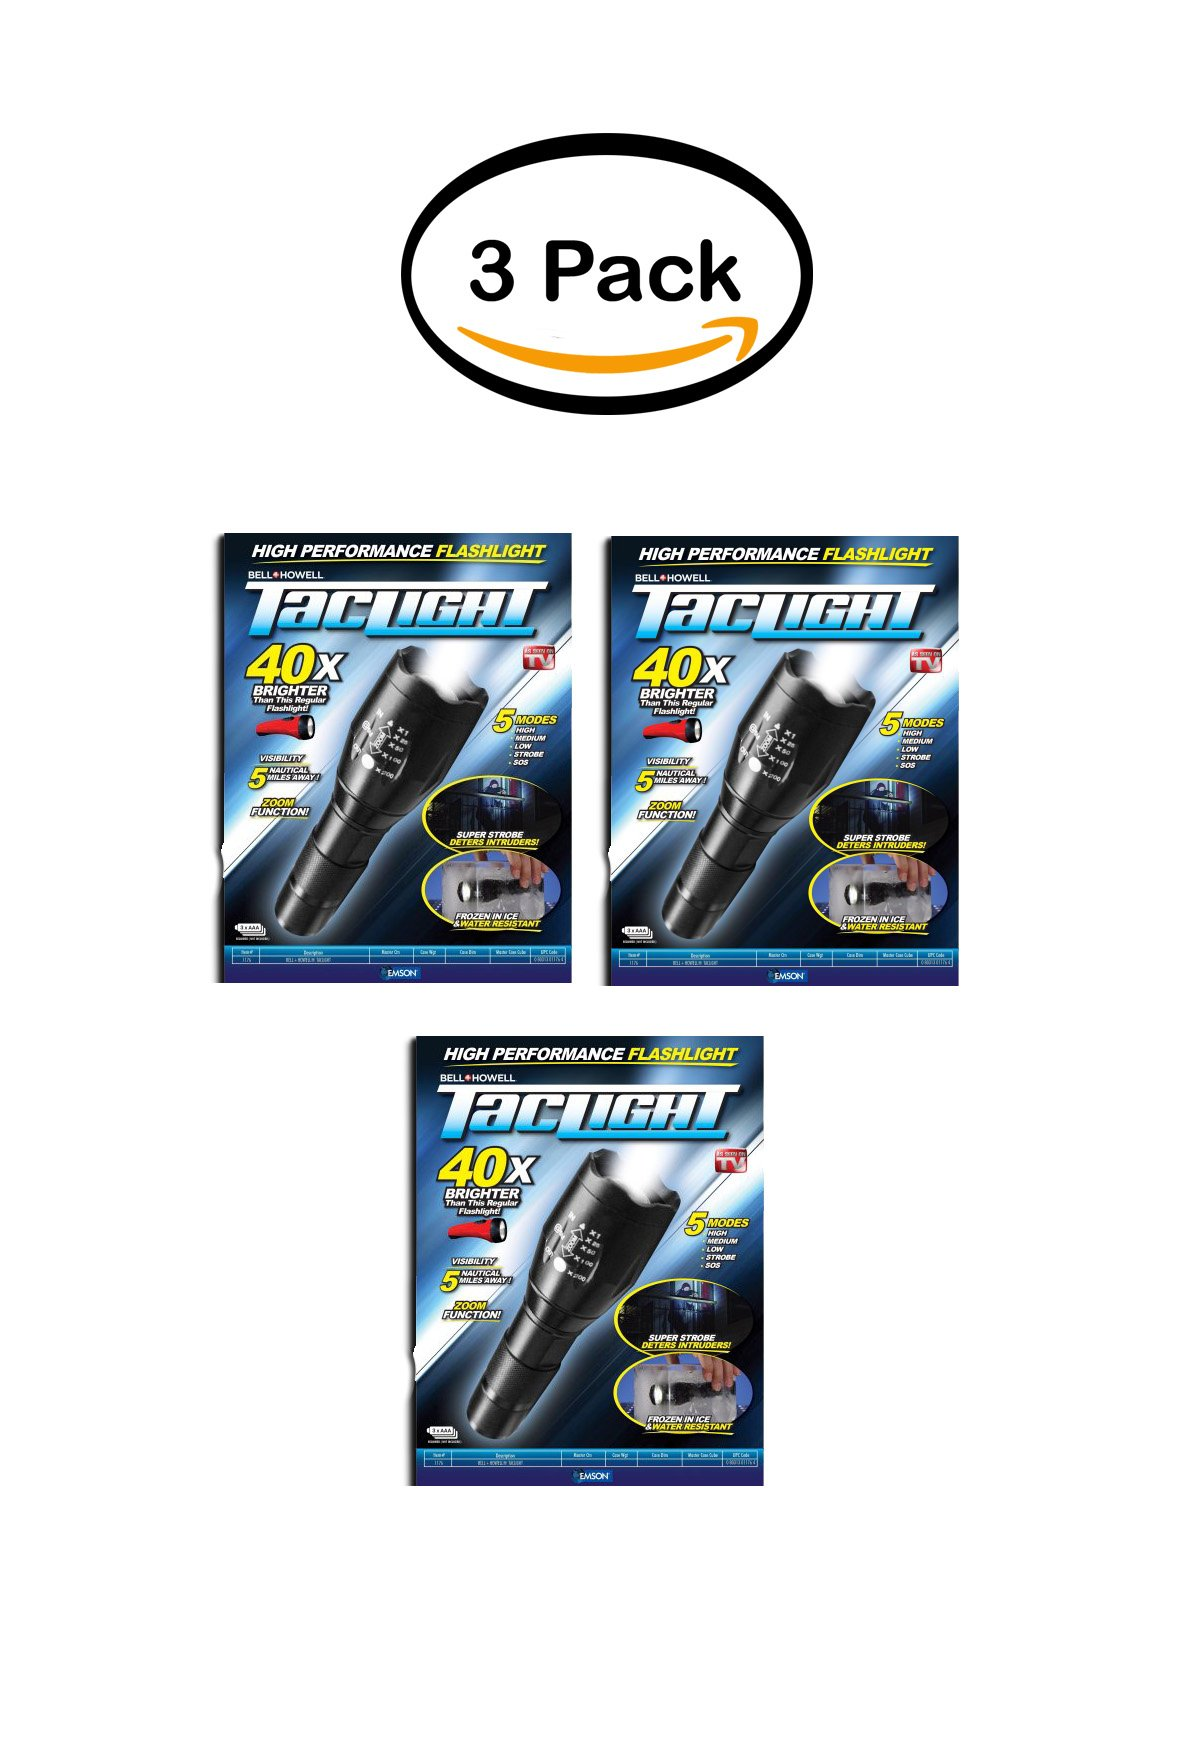 PACK OF 3 - As Seen on TV Bell + Howell Taclight LED Flashlight